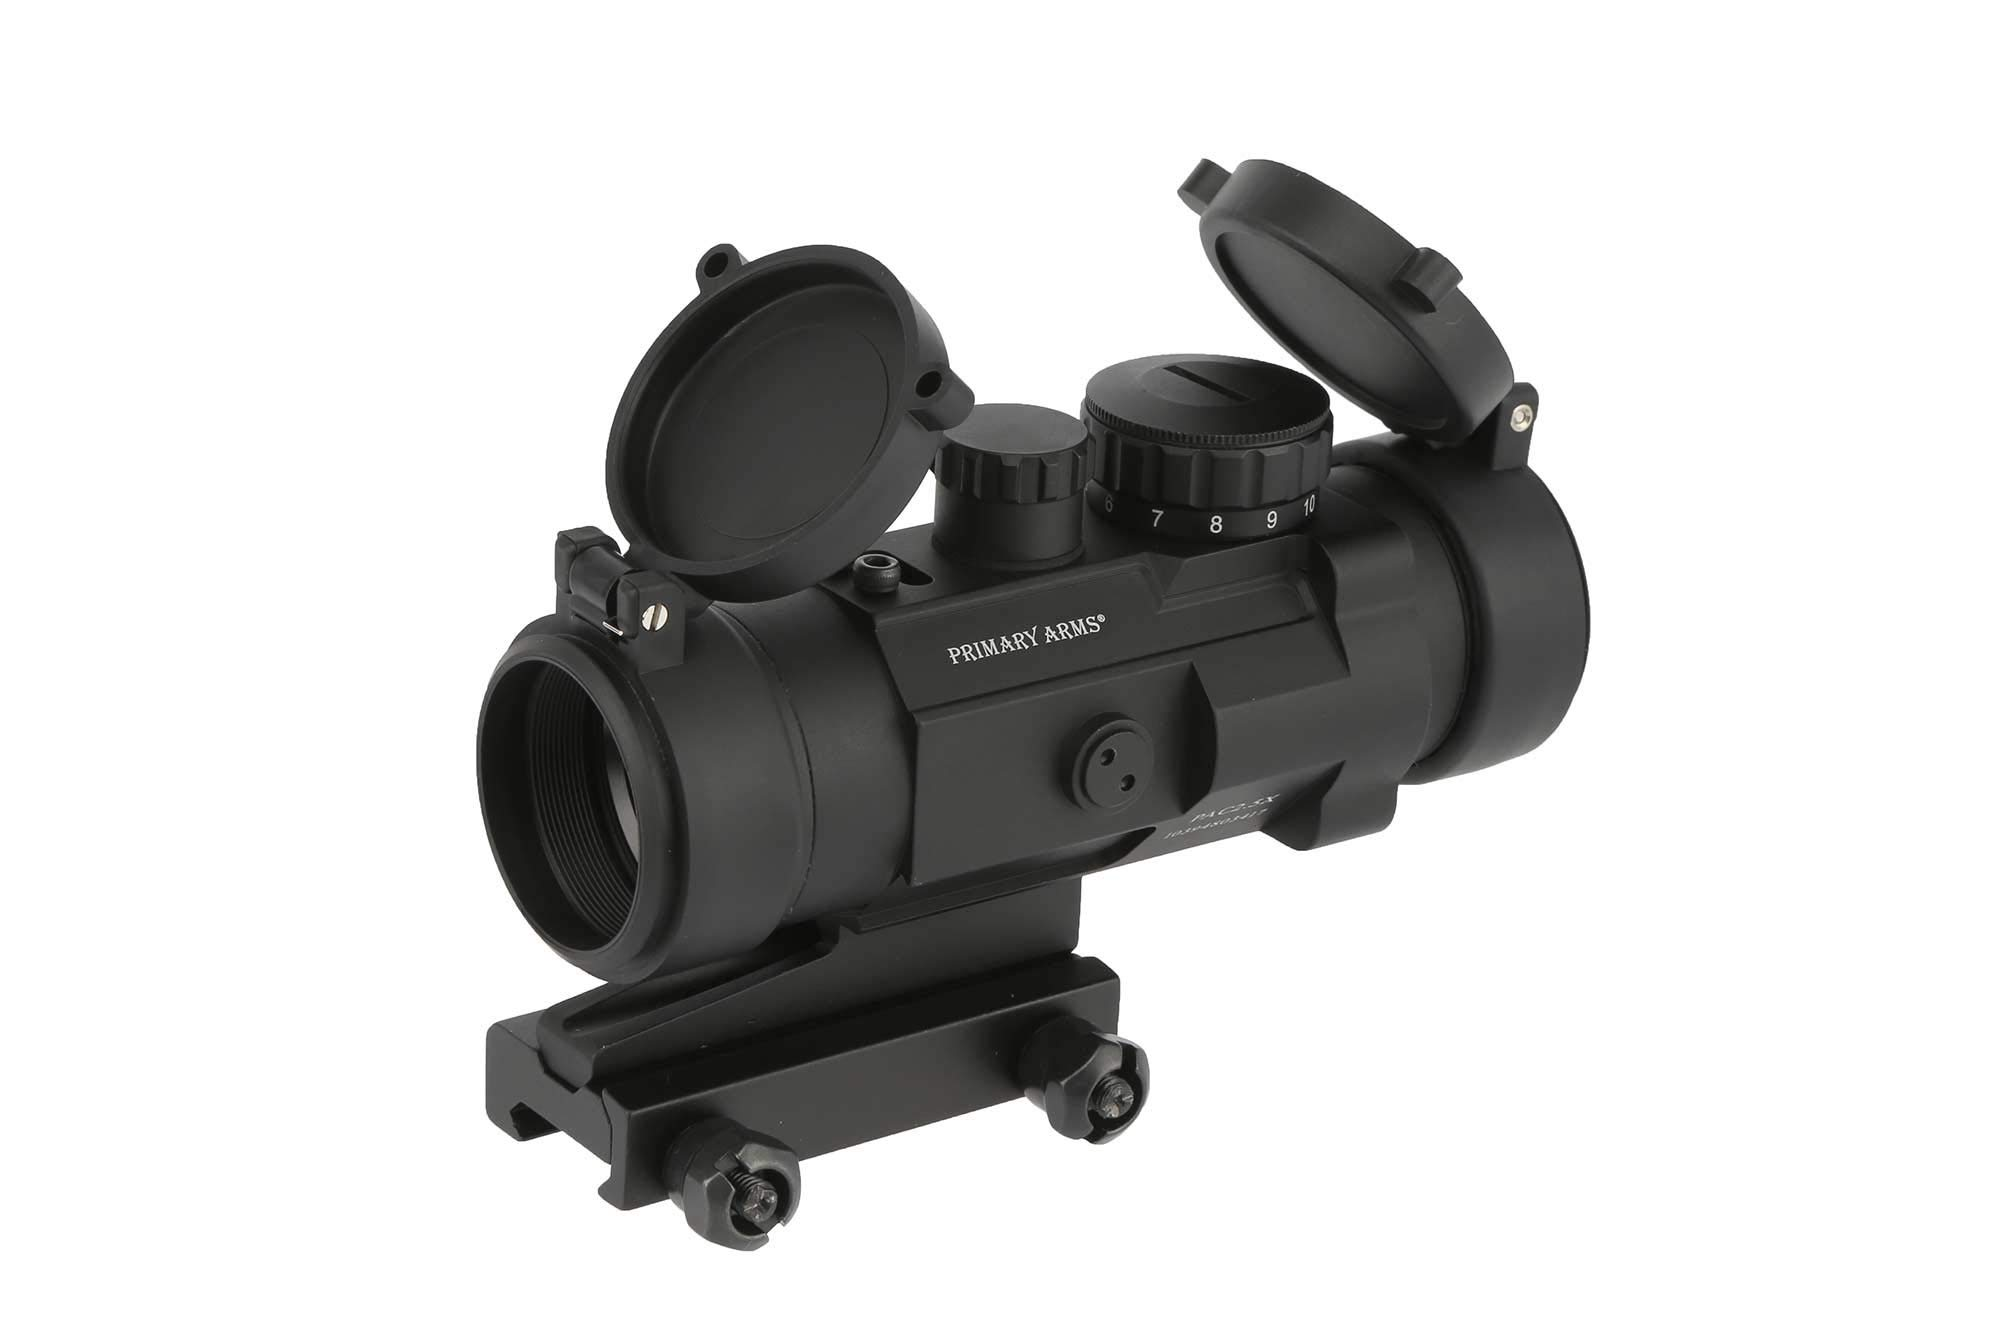 Primary Arms SLxP2.5 Compact 2.5x32 Prism Scope - ACSS-CQB-M1 by Primary Arms